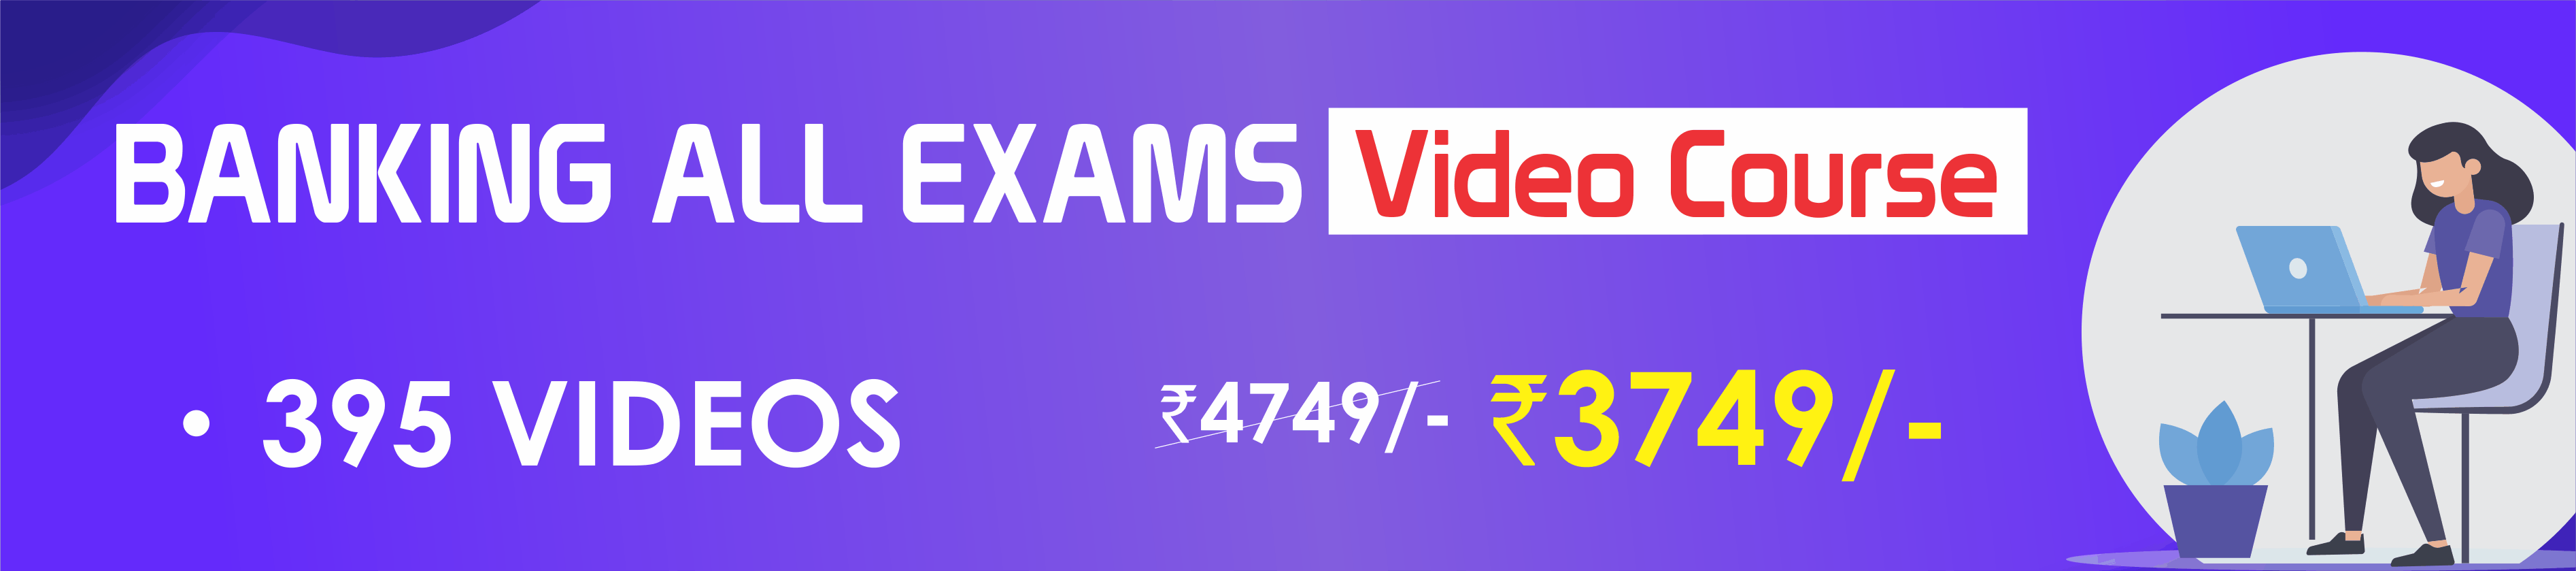 BANKING ALL  EXAMS VIDEO COURSE